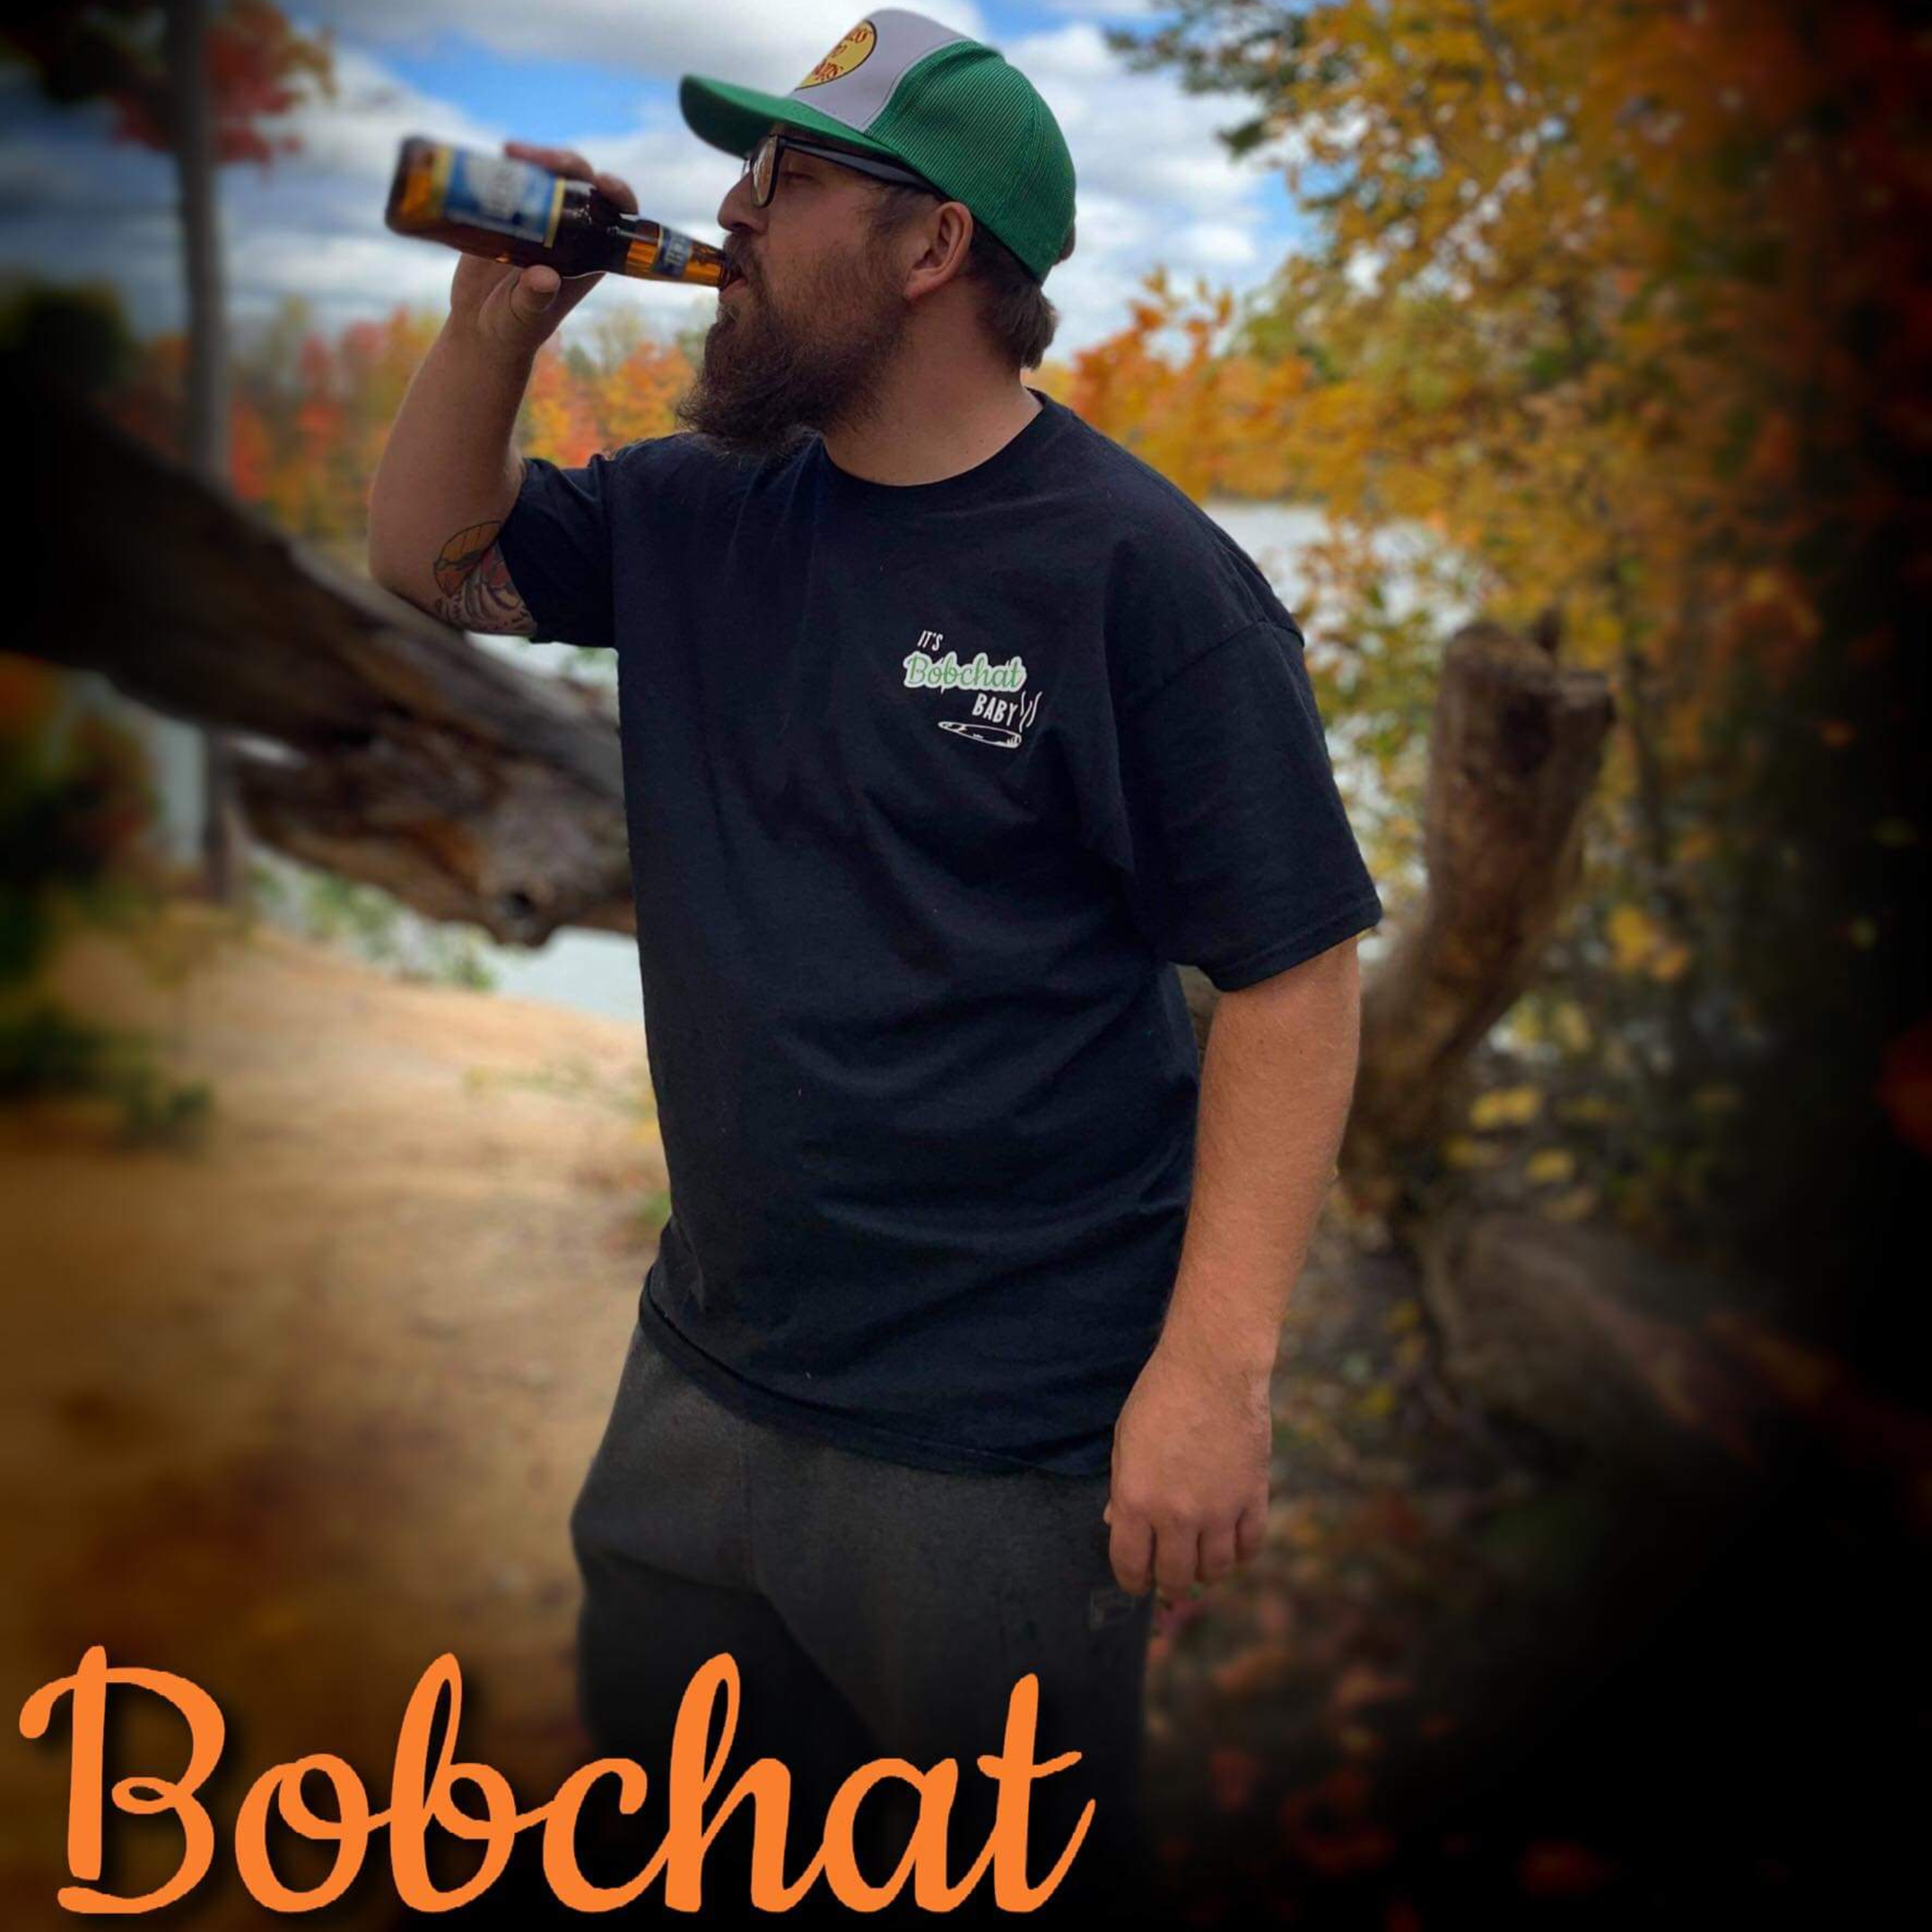 Bobchat Episode 22: All Alan All The Time!